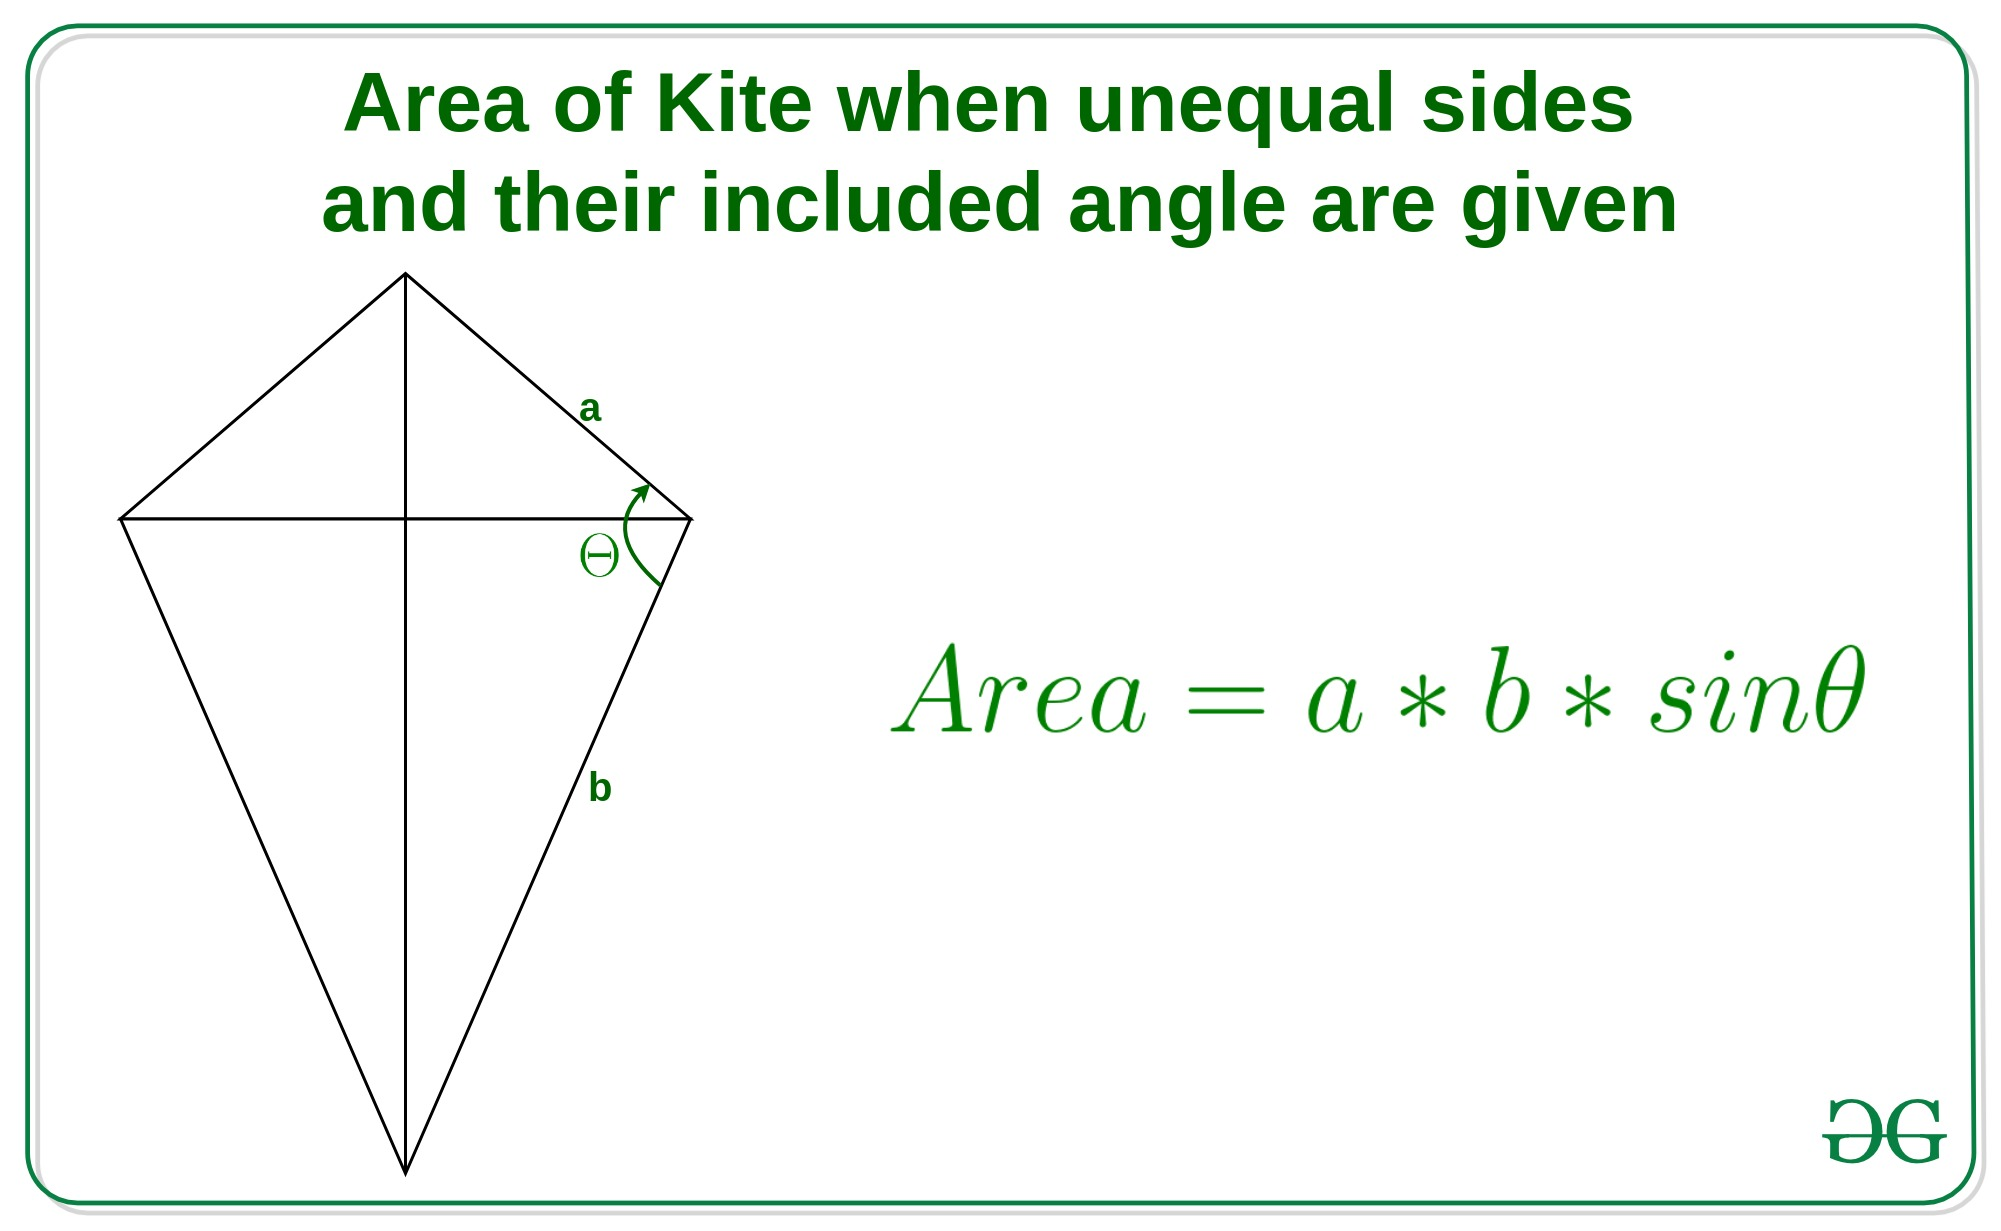 Program To Calculate The Area Of Kite